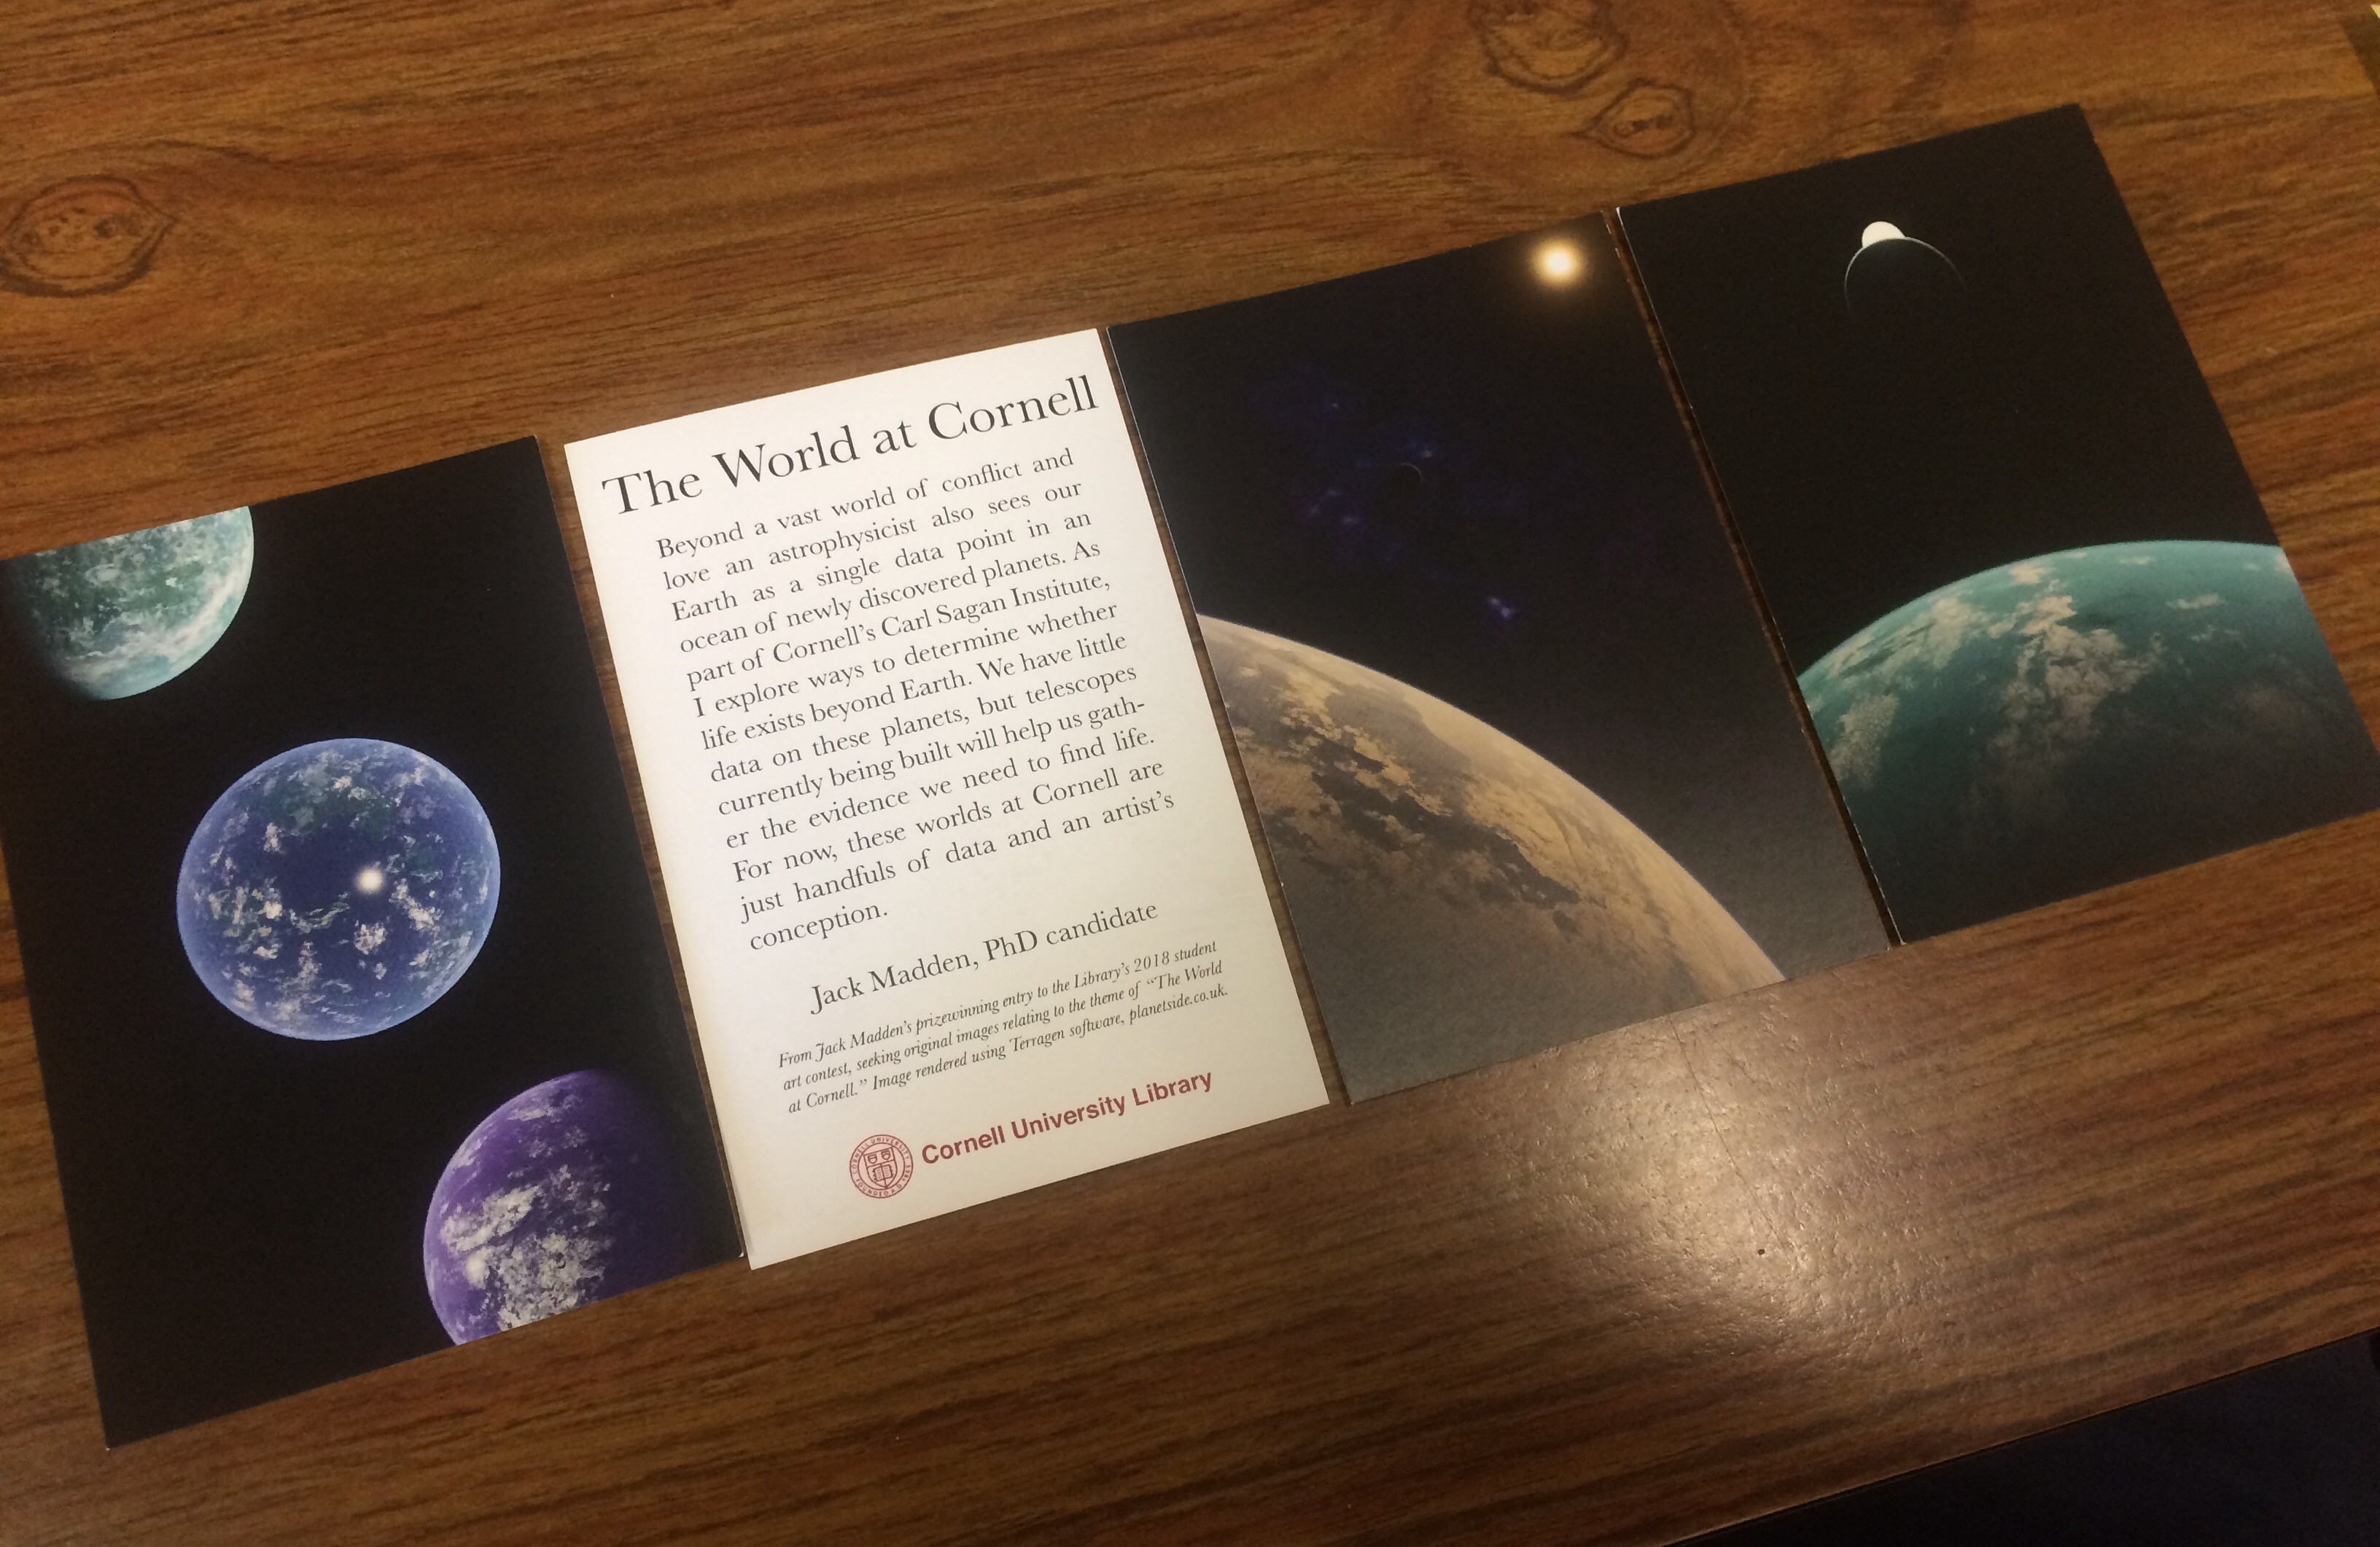 Cards made by Cornell for my submissions.